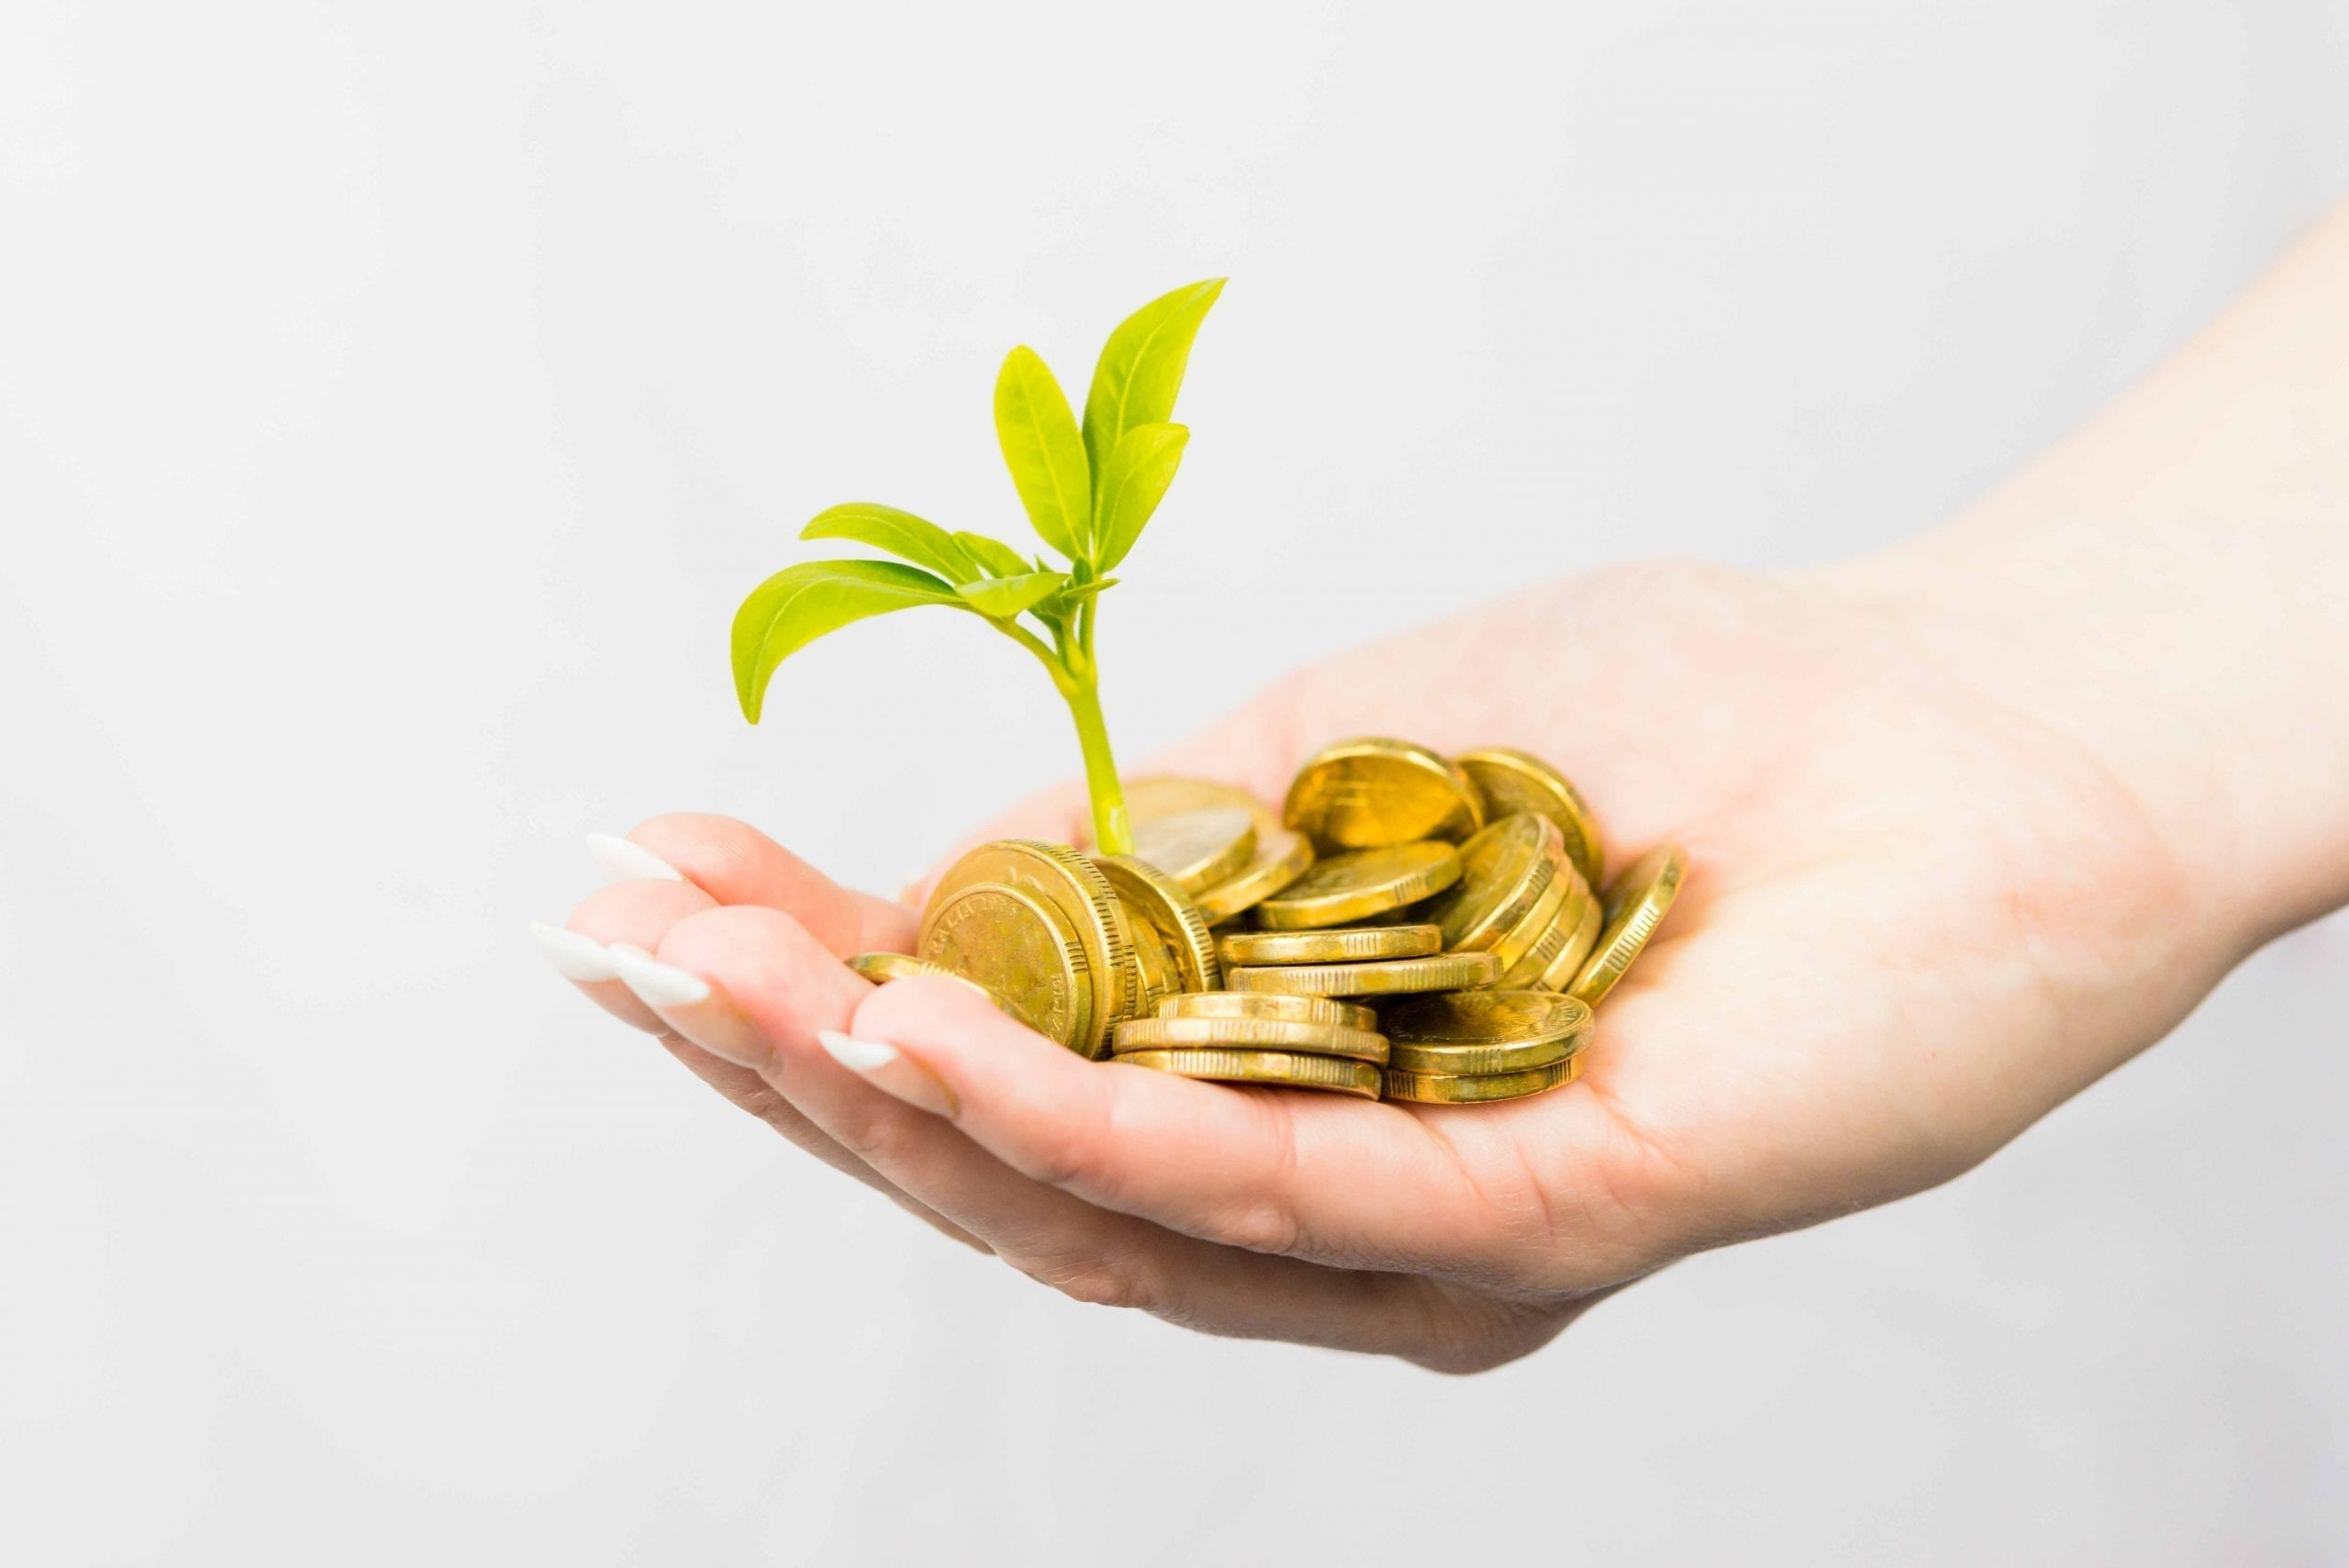 Superannuation Mackay - hand holding gold coins with plant sprouting from them to indicate growing your super